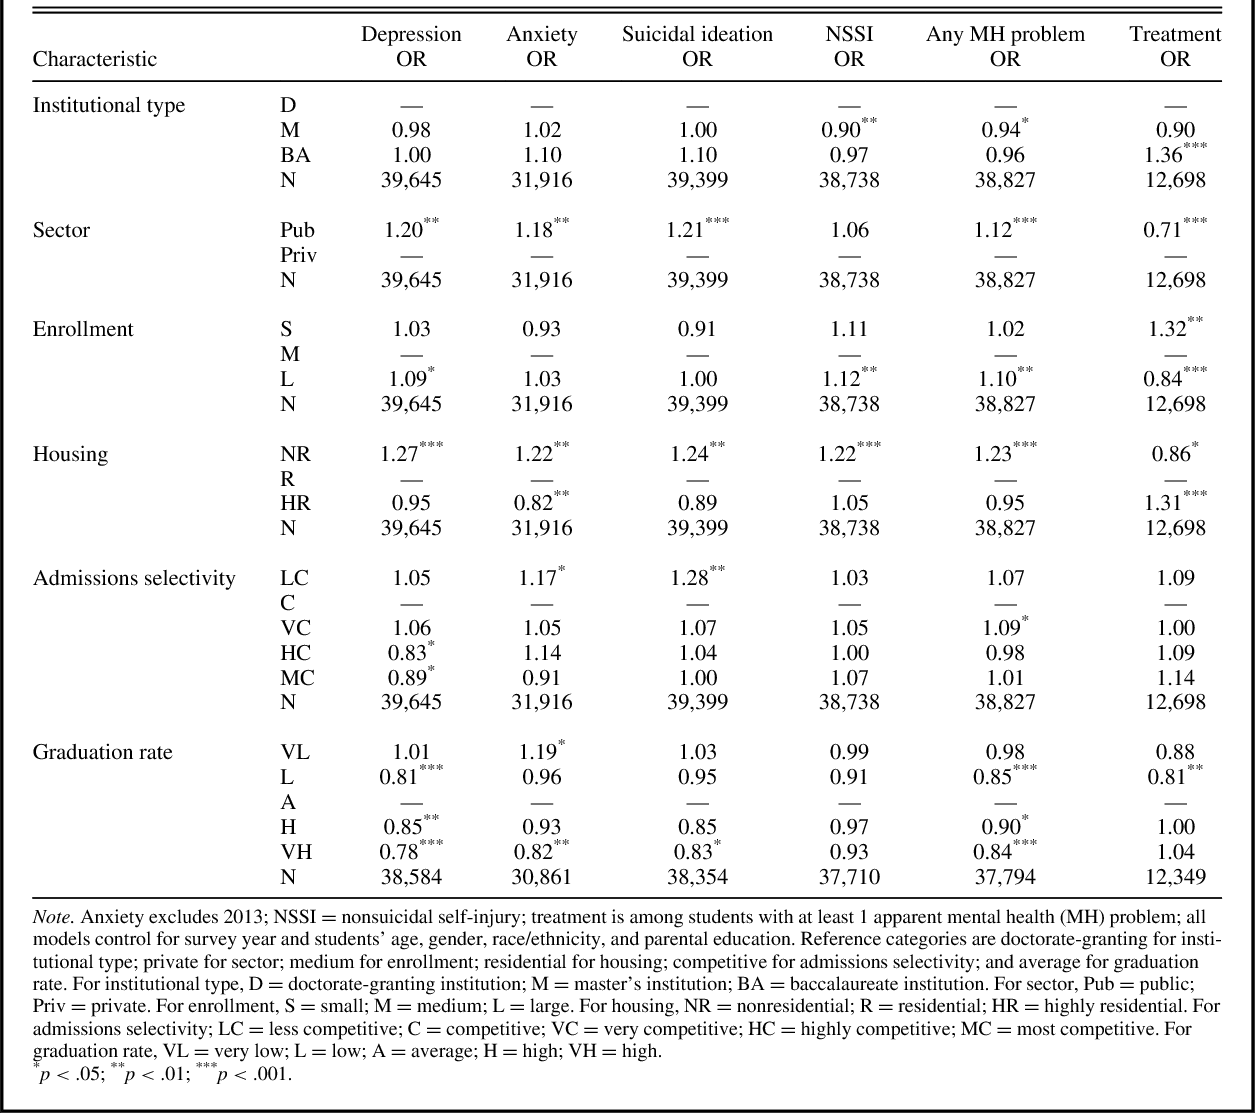 TABLE 3. Multivariable Correlates of Mental Health Problems and Treatment Utilization (Logistic Regressions)